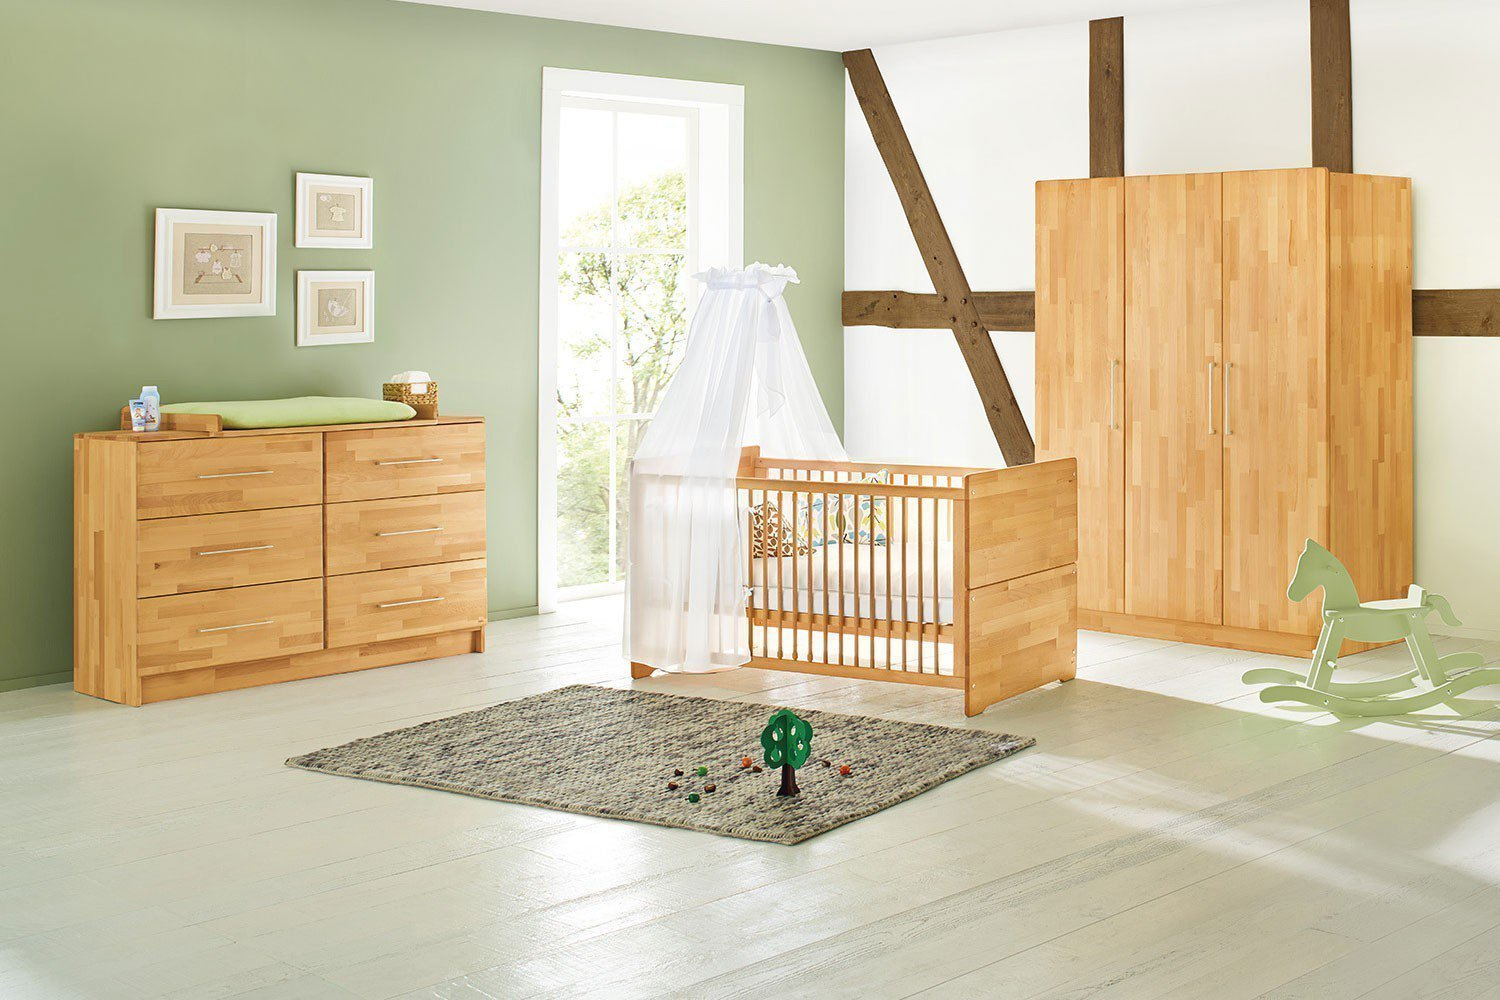 pinolino natura kinderzimmer massiv buche m bel letz. Black Bedroom Furniture Sets. Home Design Ideas